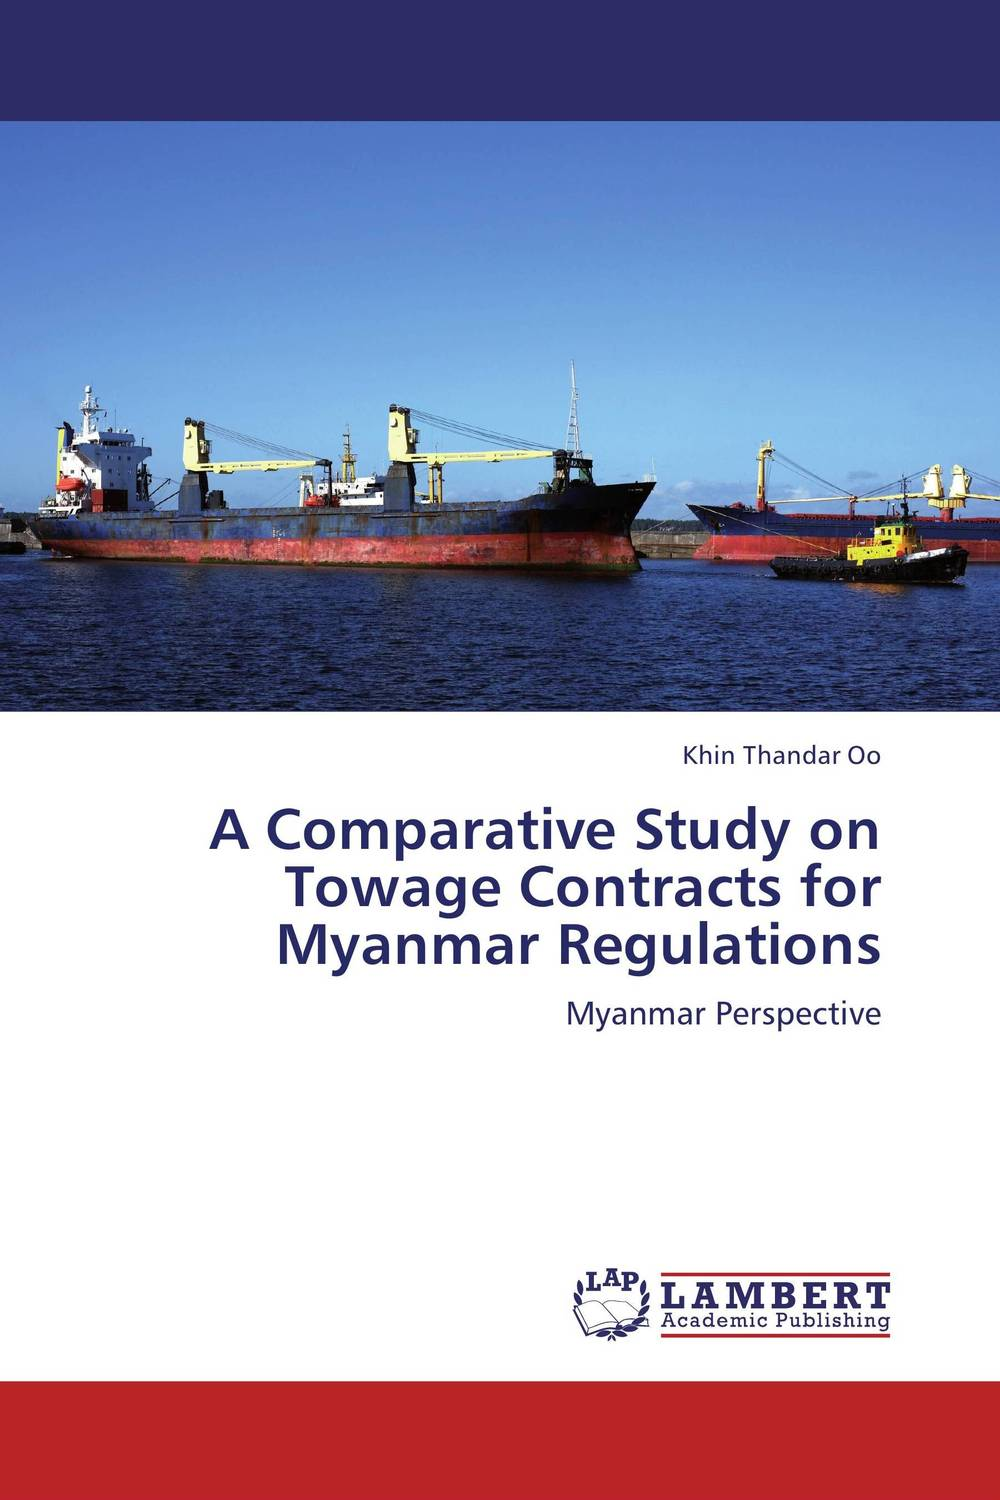 A Comparative Study on Towage Contracts for Myanmar Regulations dharam singh meena mahendra singh chundawat and rakesh kumar meena a comparative study between tribal and nontribal sports person